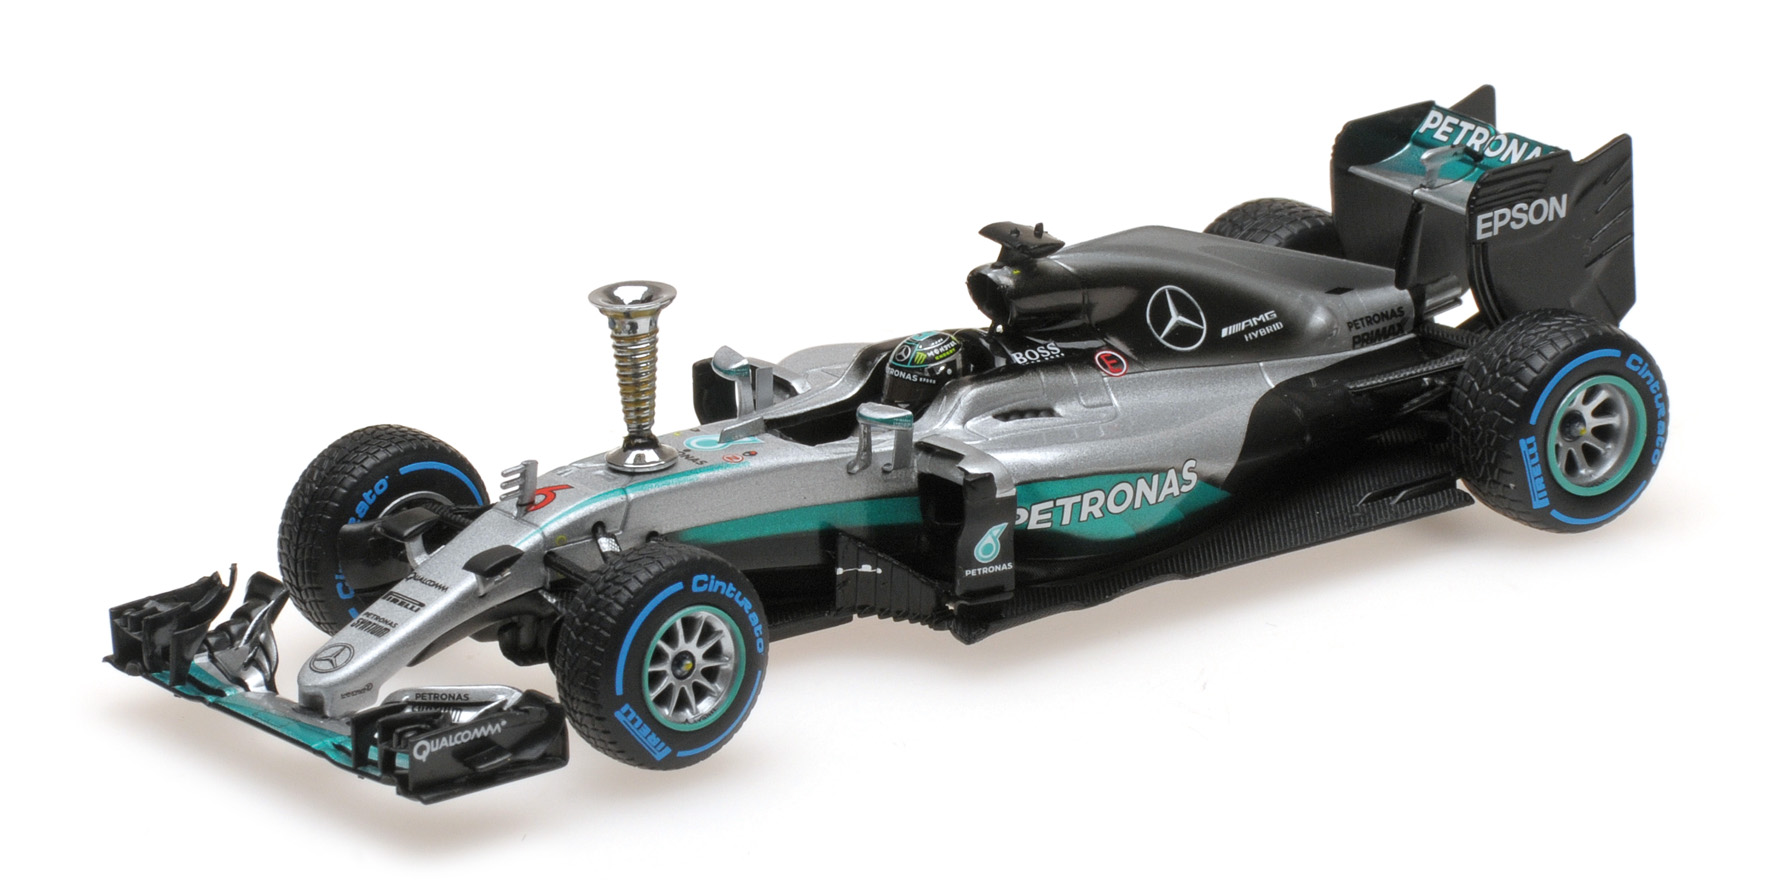 MERCEDES AMG W07 HYBRID NICO ROSBERG RUN WORLD CHAMPION 2016 Minichamps Minicham